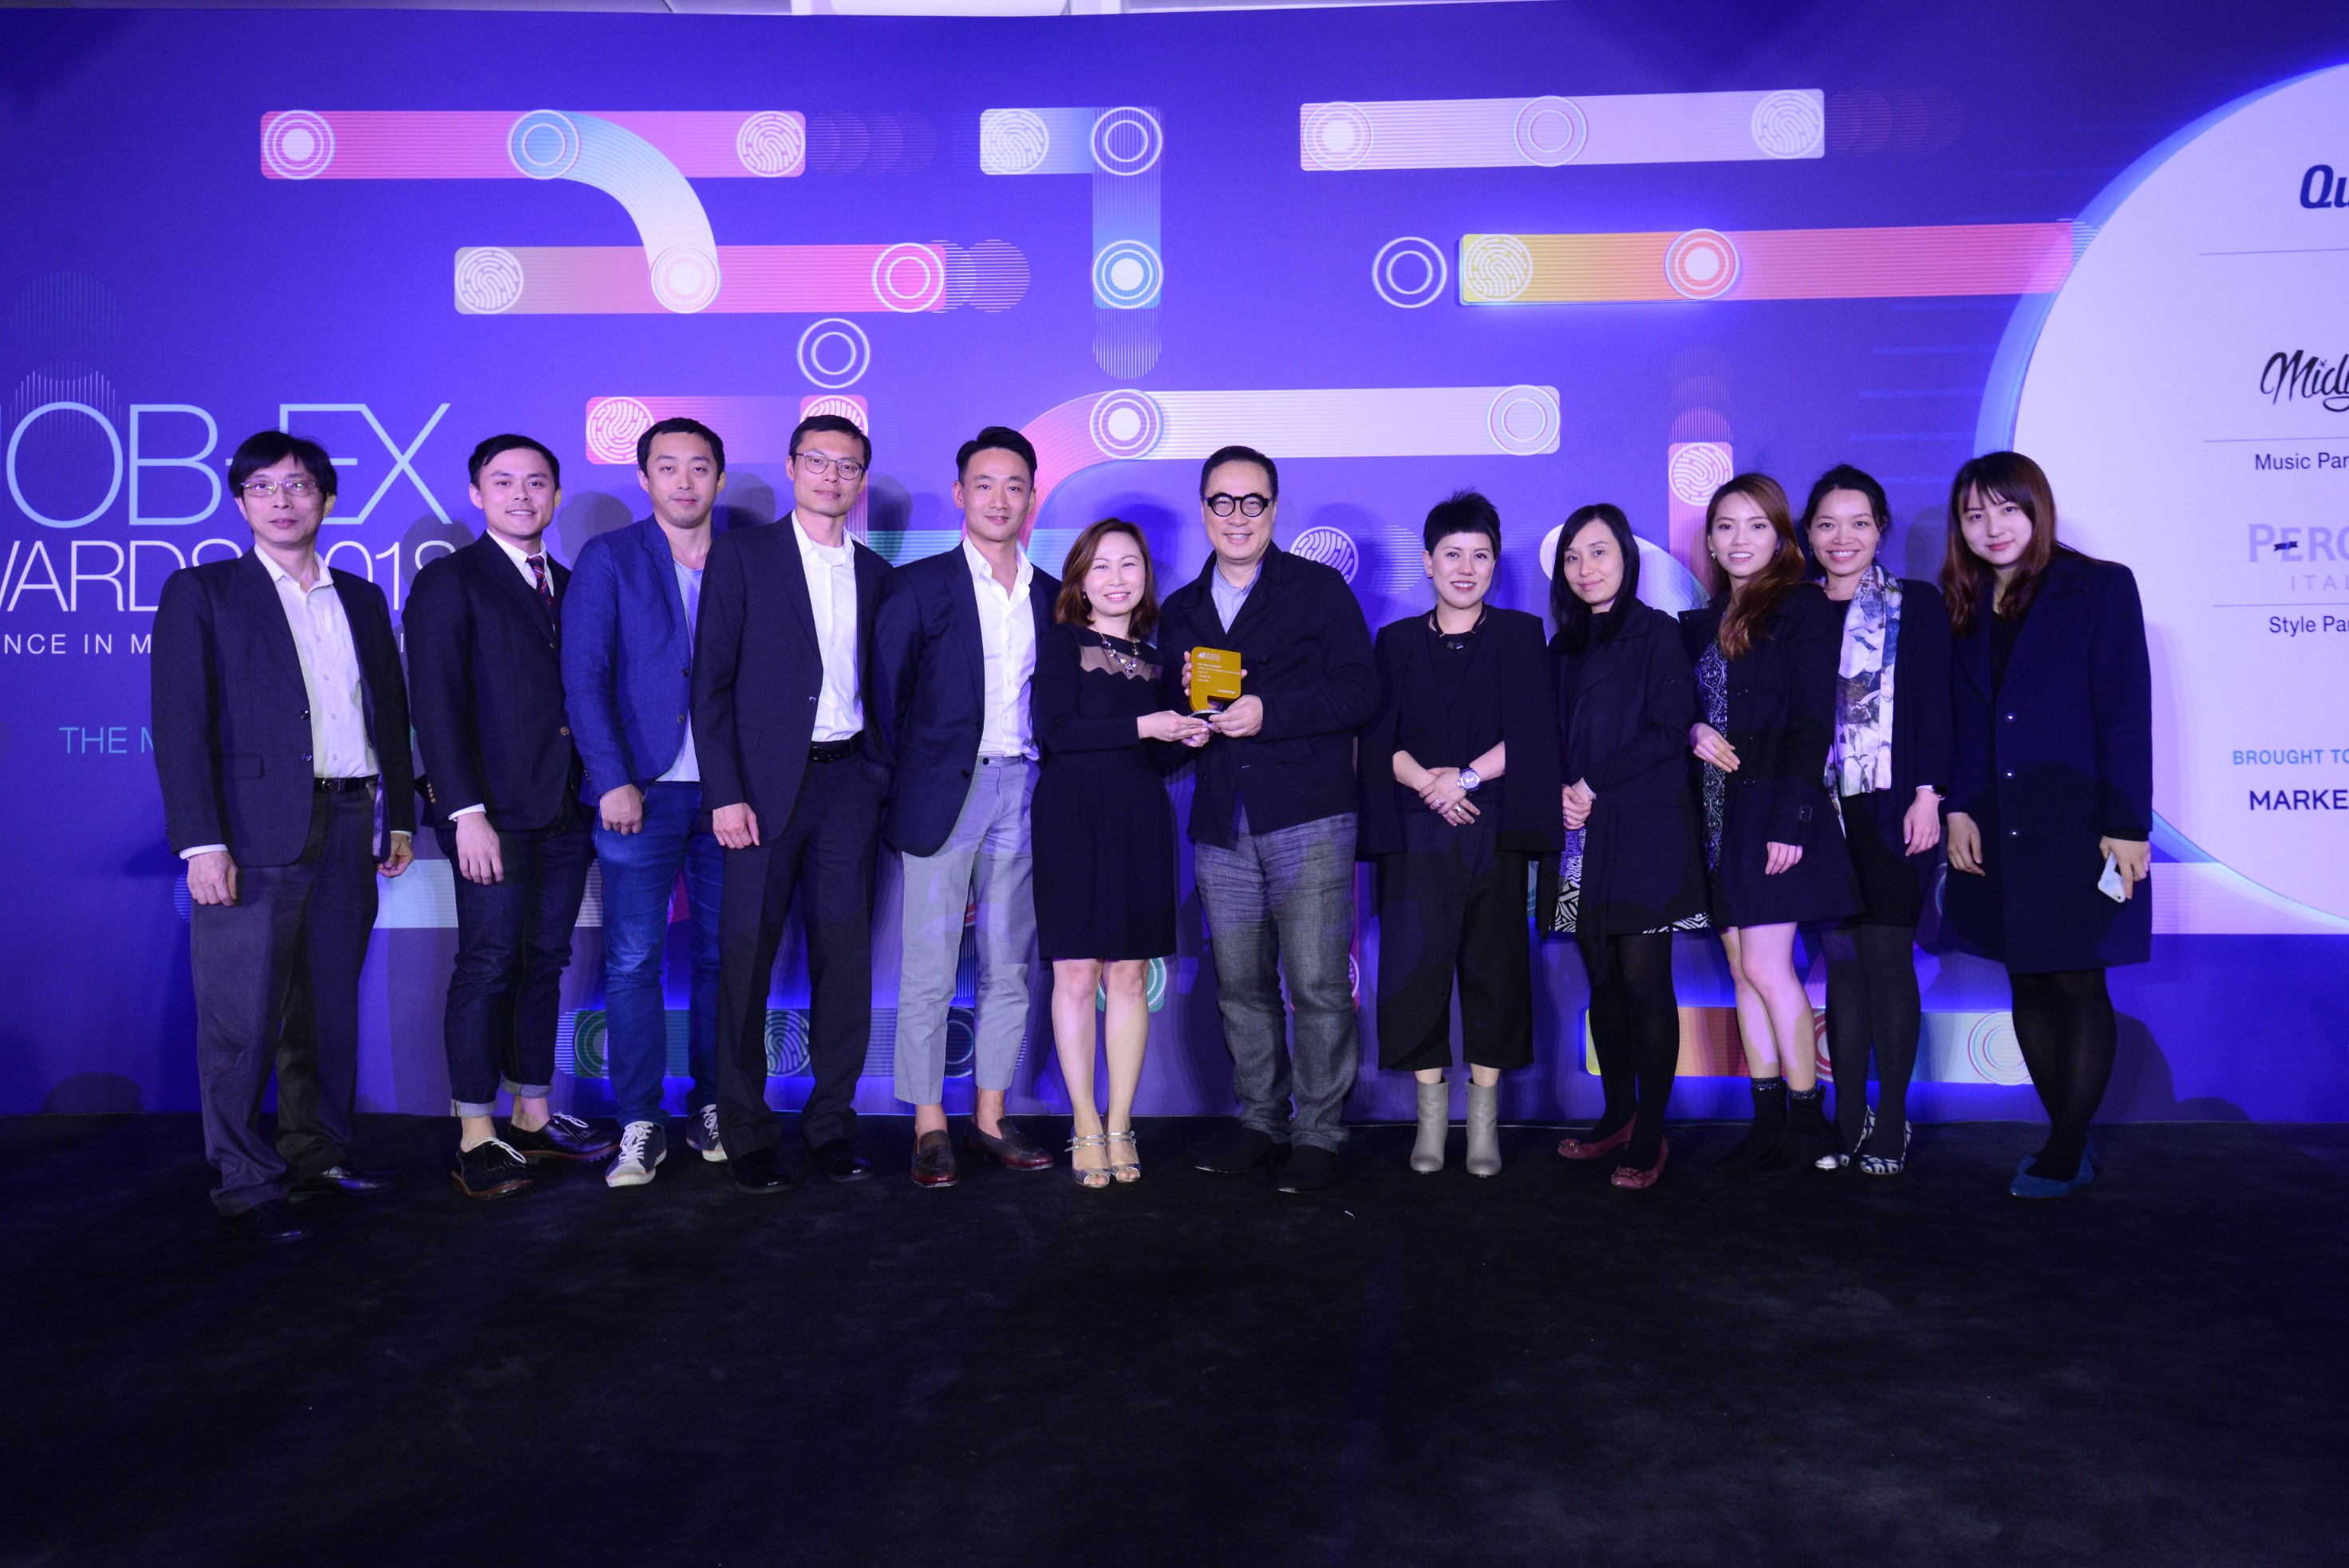 Gallery] Winners of the Mob-Ex Awards 2018 revealed